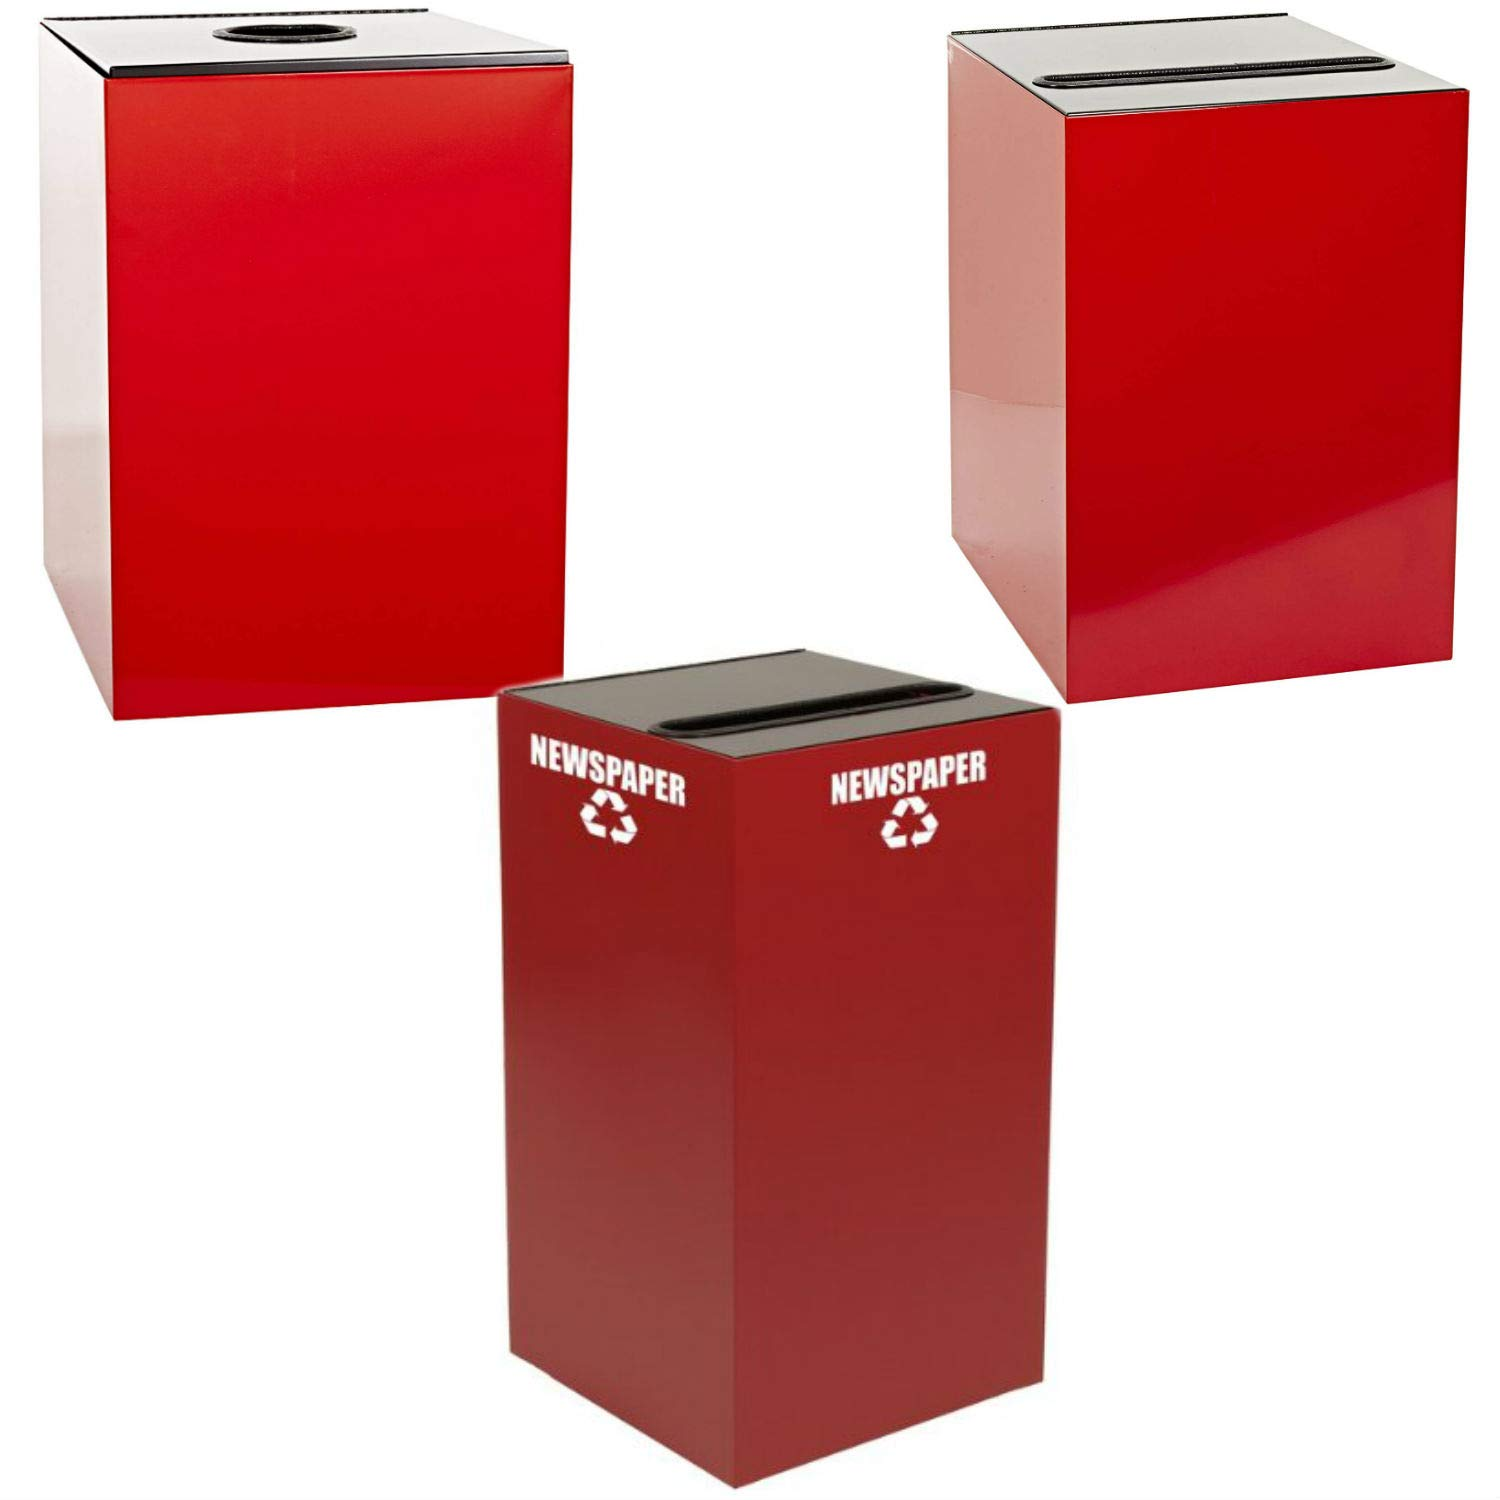 Witt Industries Steel 28-Gallon Geo Cube Recycling Container, Round Opening, Legend Cans, Slot Opening, Legend Newspaper and Square Opening, Legend Waste Square